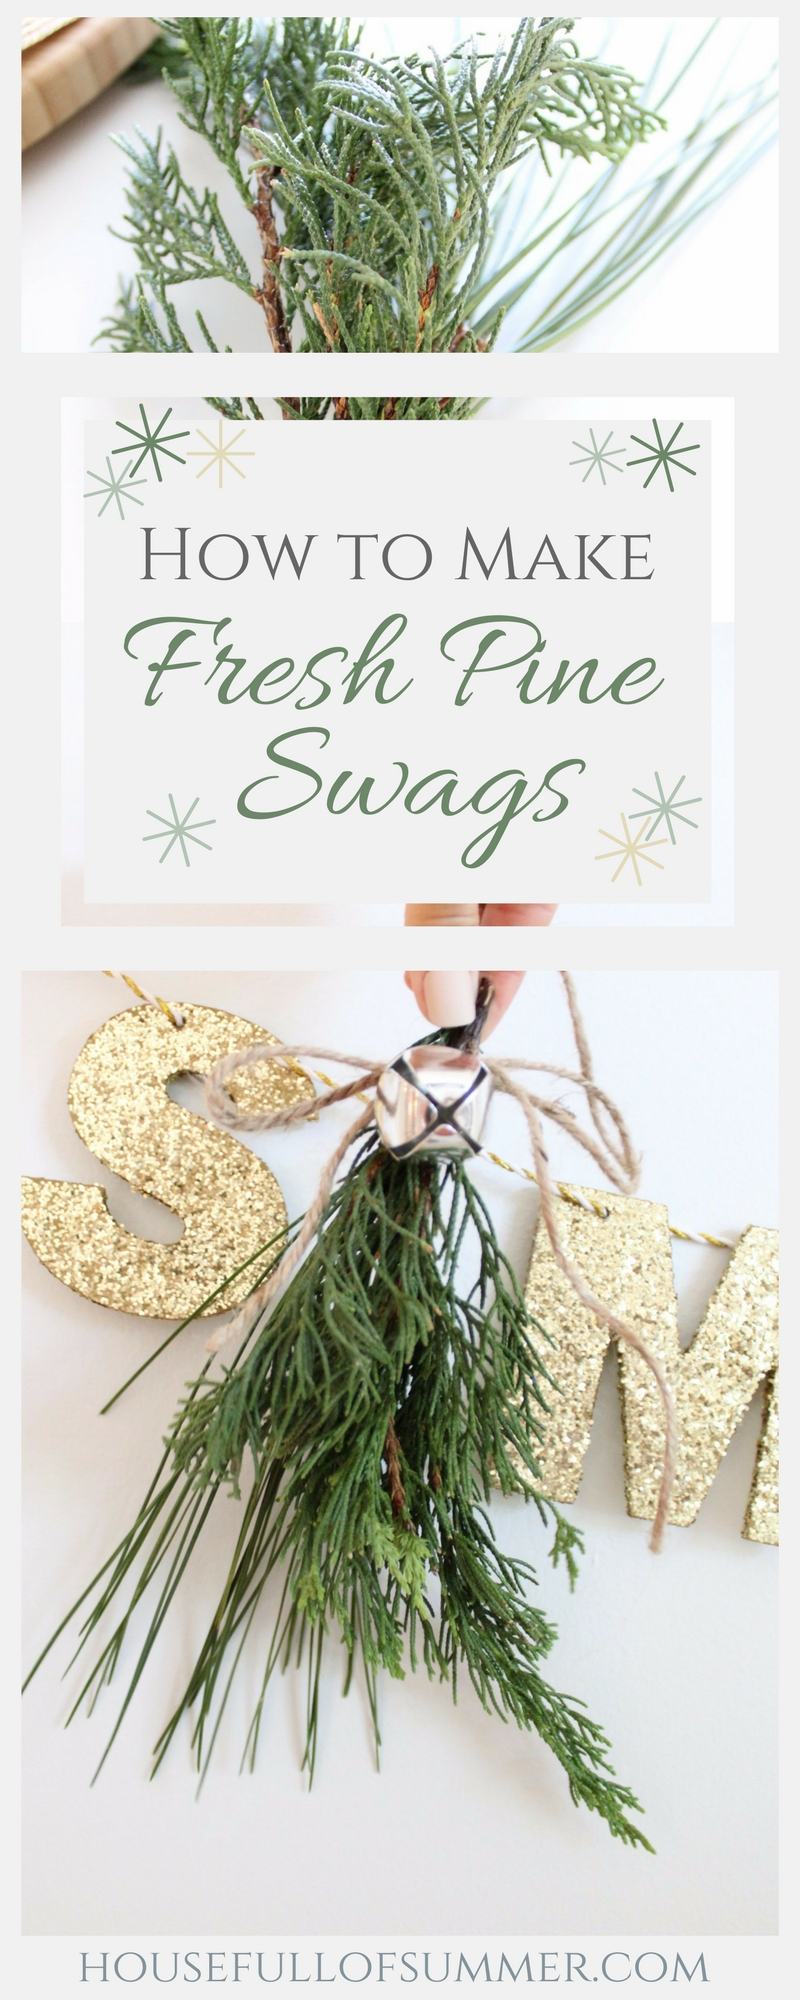 How to Make Fresh Pine Swags | House Full of Summer blog - diy christmas ideas, christmas decor, natural greenery christmas decorations, holiday decor, chair decor, gift wrapping ideas,